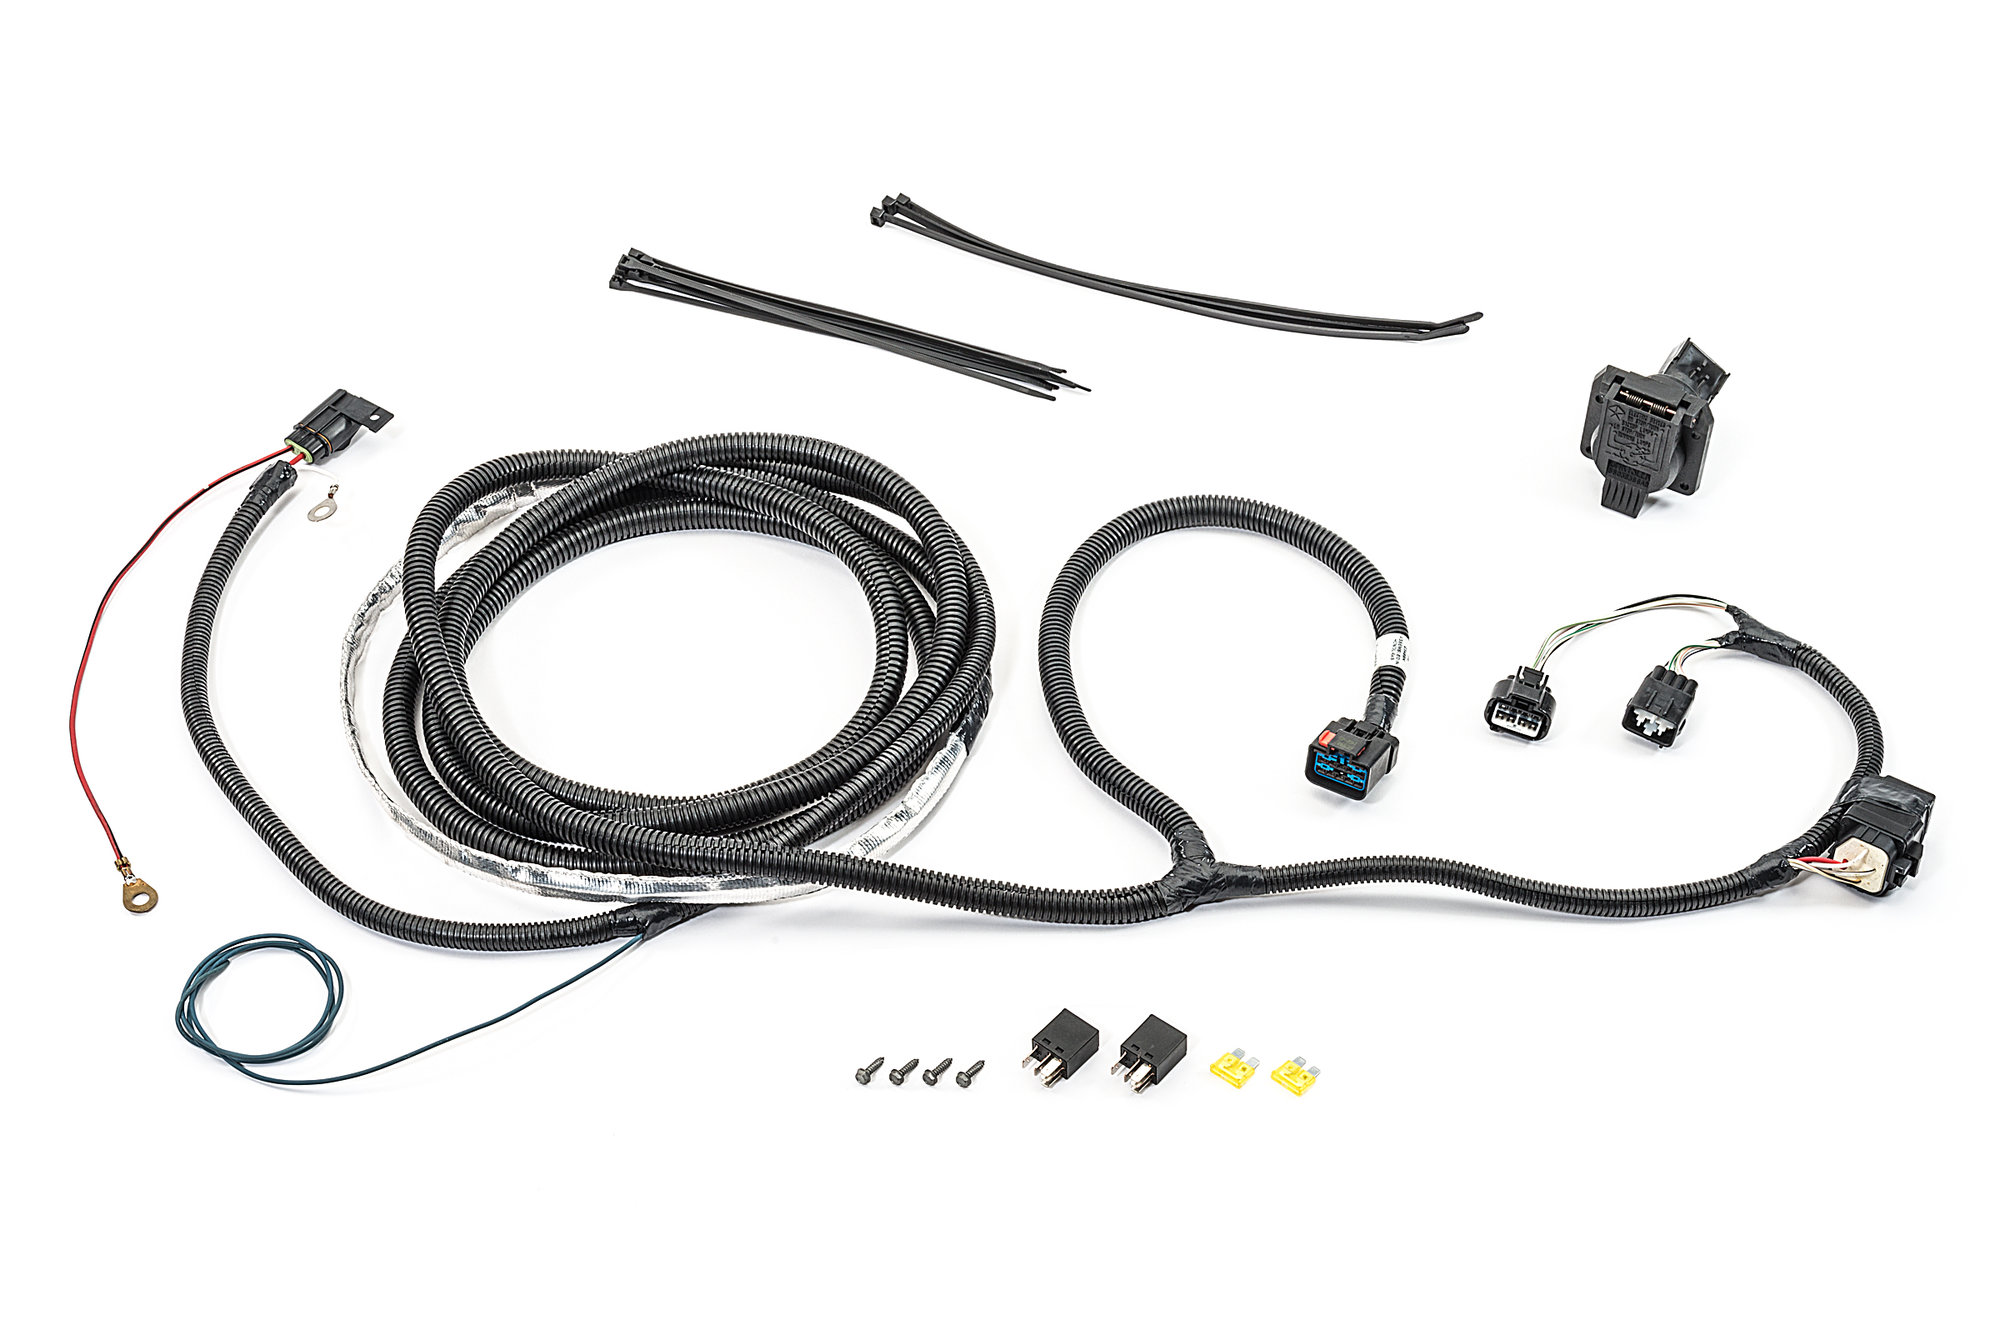 hight resolution of mopar 82209769ab 7 way round hitch wiring harness for 05 06 jeep grand cherokee wk previous next